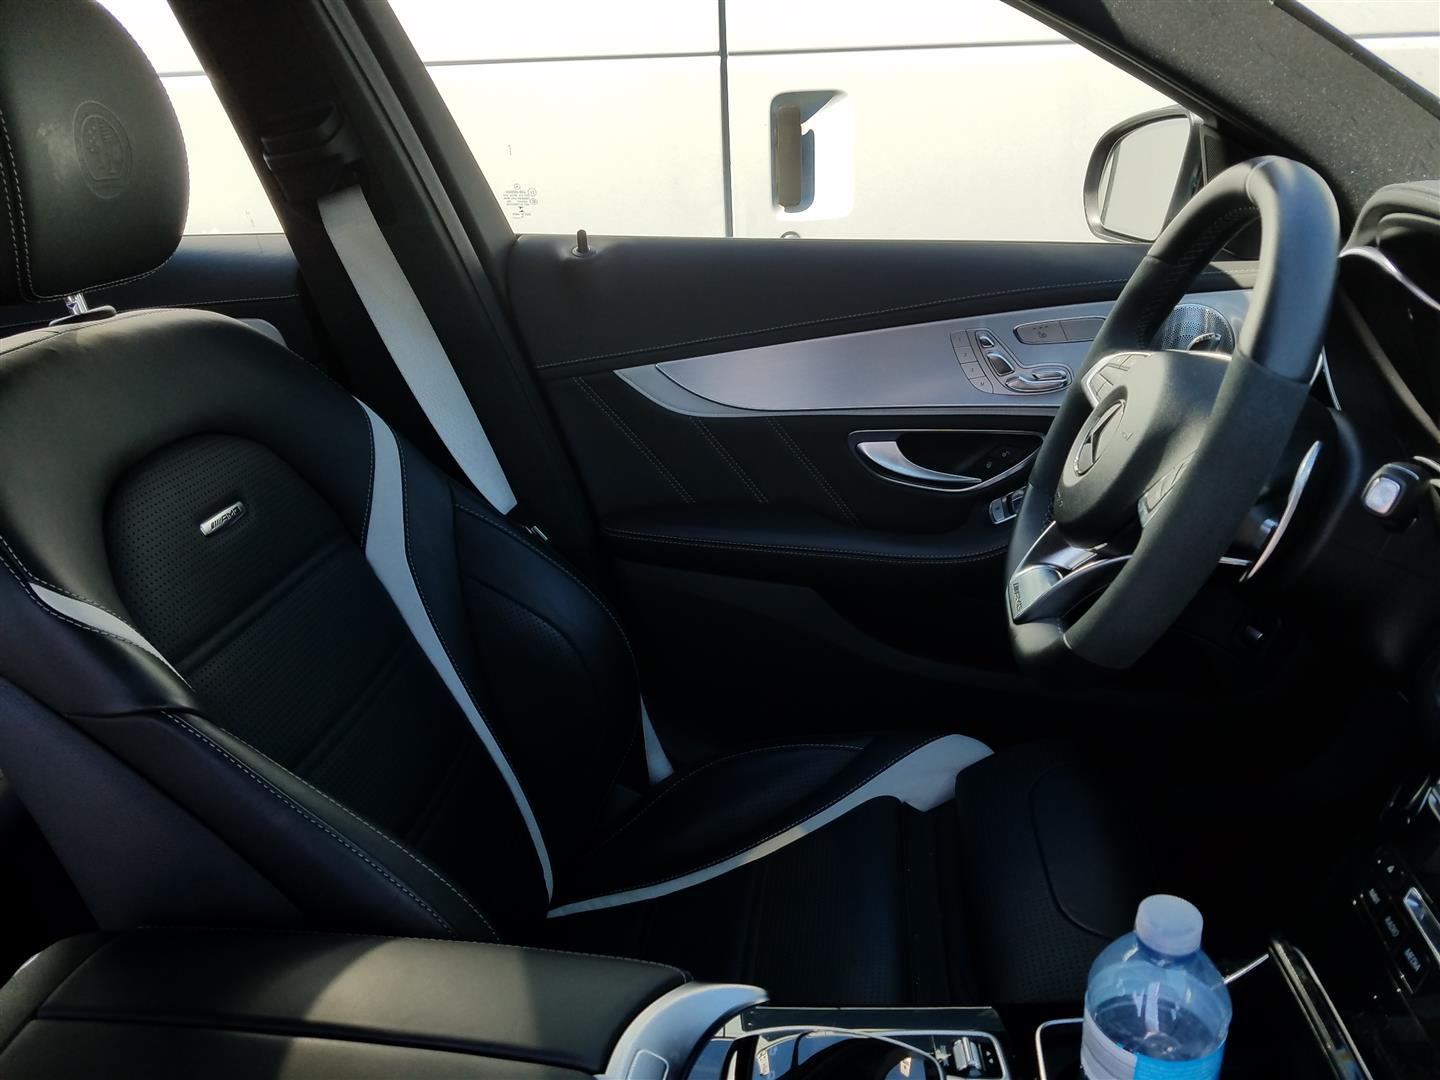 rental review 2017 mercedes amg c63 s sedan the truth about cars 2017 mercedes amg c63 s sedan at sebring interior driver s side image